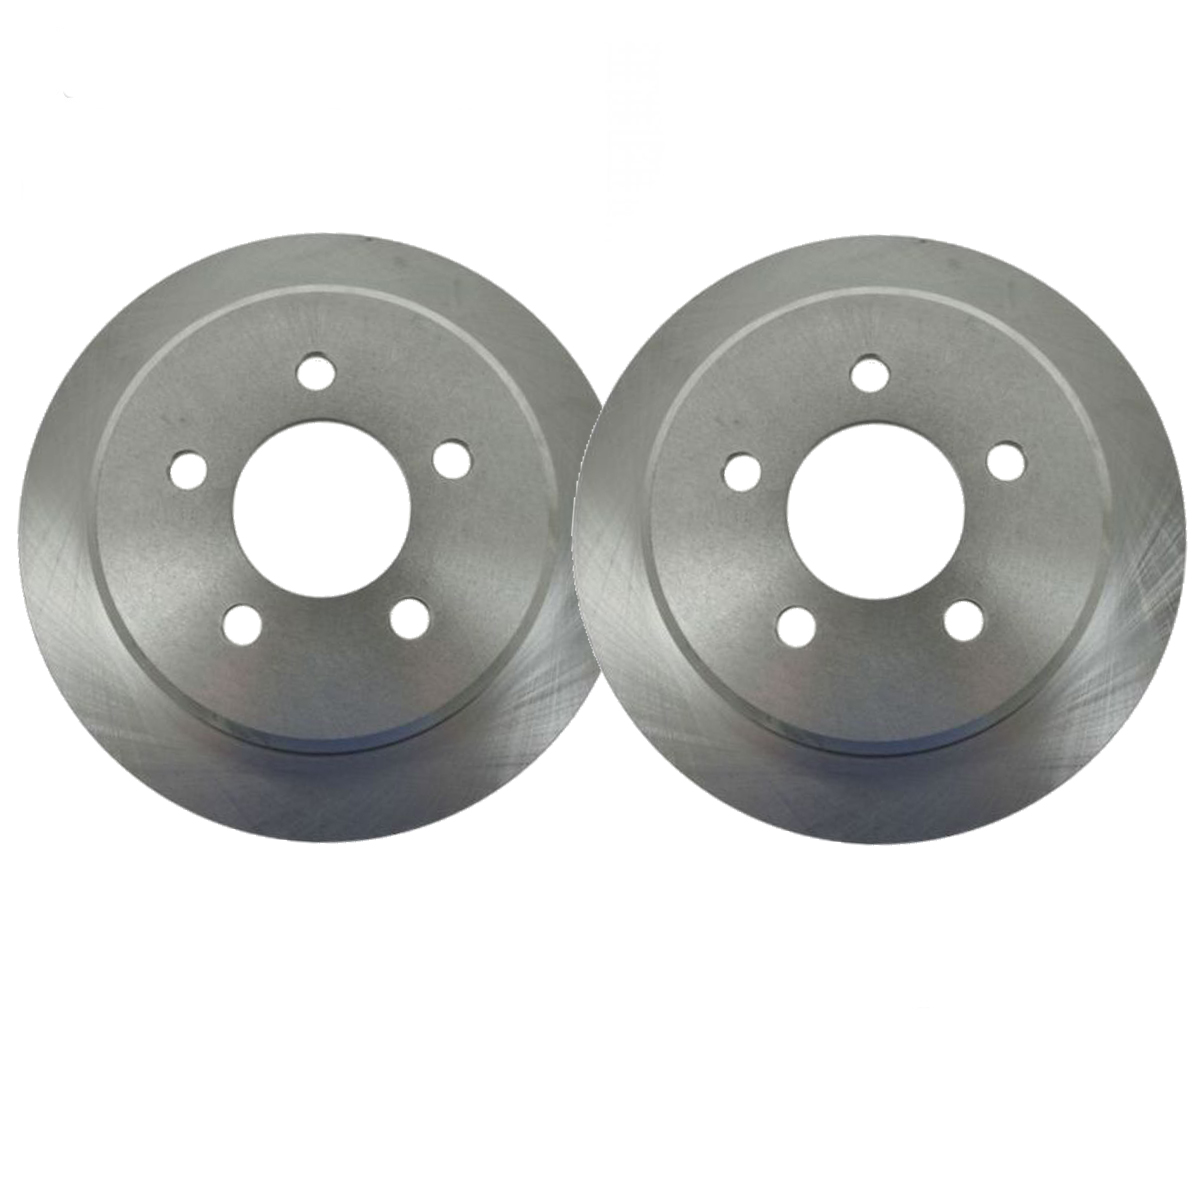 Front Brake Rotors - Models without Sport Package - 295mm Size